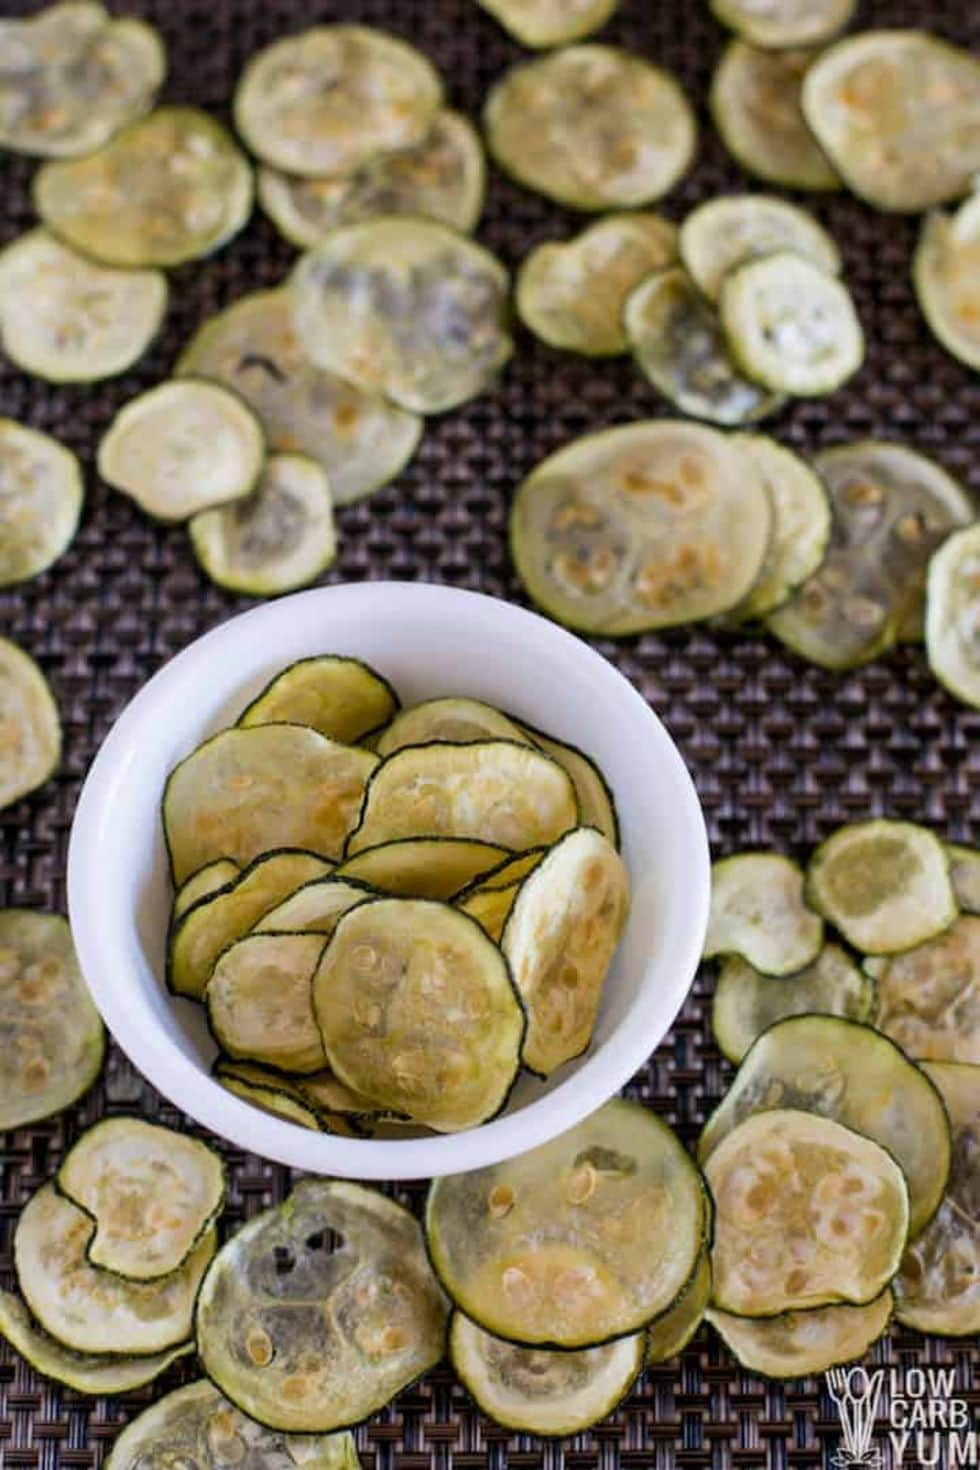 lots of crunchy keto snack zucchini chips spread across a table with a white bowl containing zucchini chips